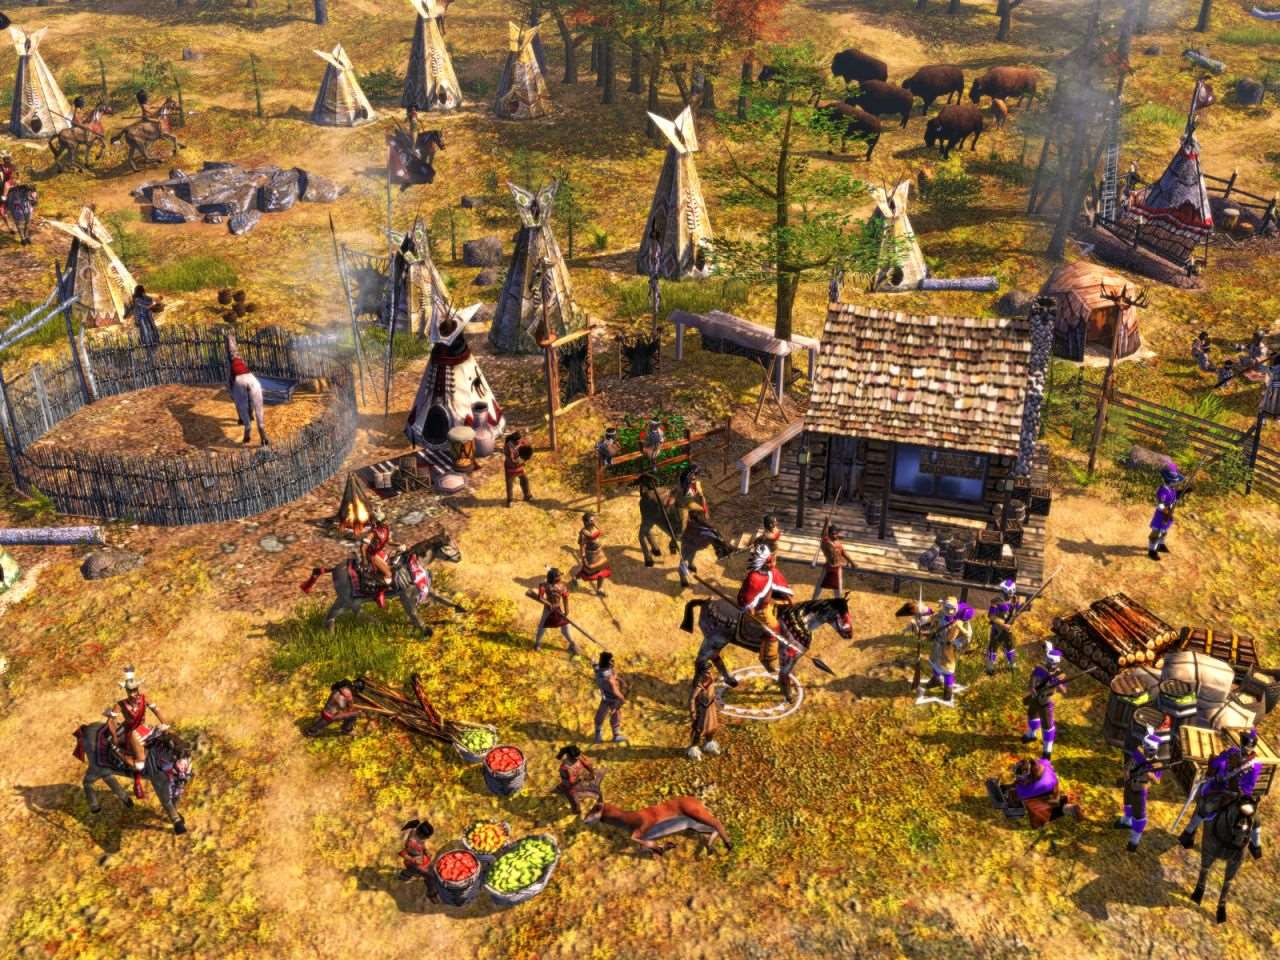 High Resolution Wallpaper | Age Of Empires III 1280x960 px